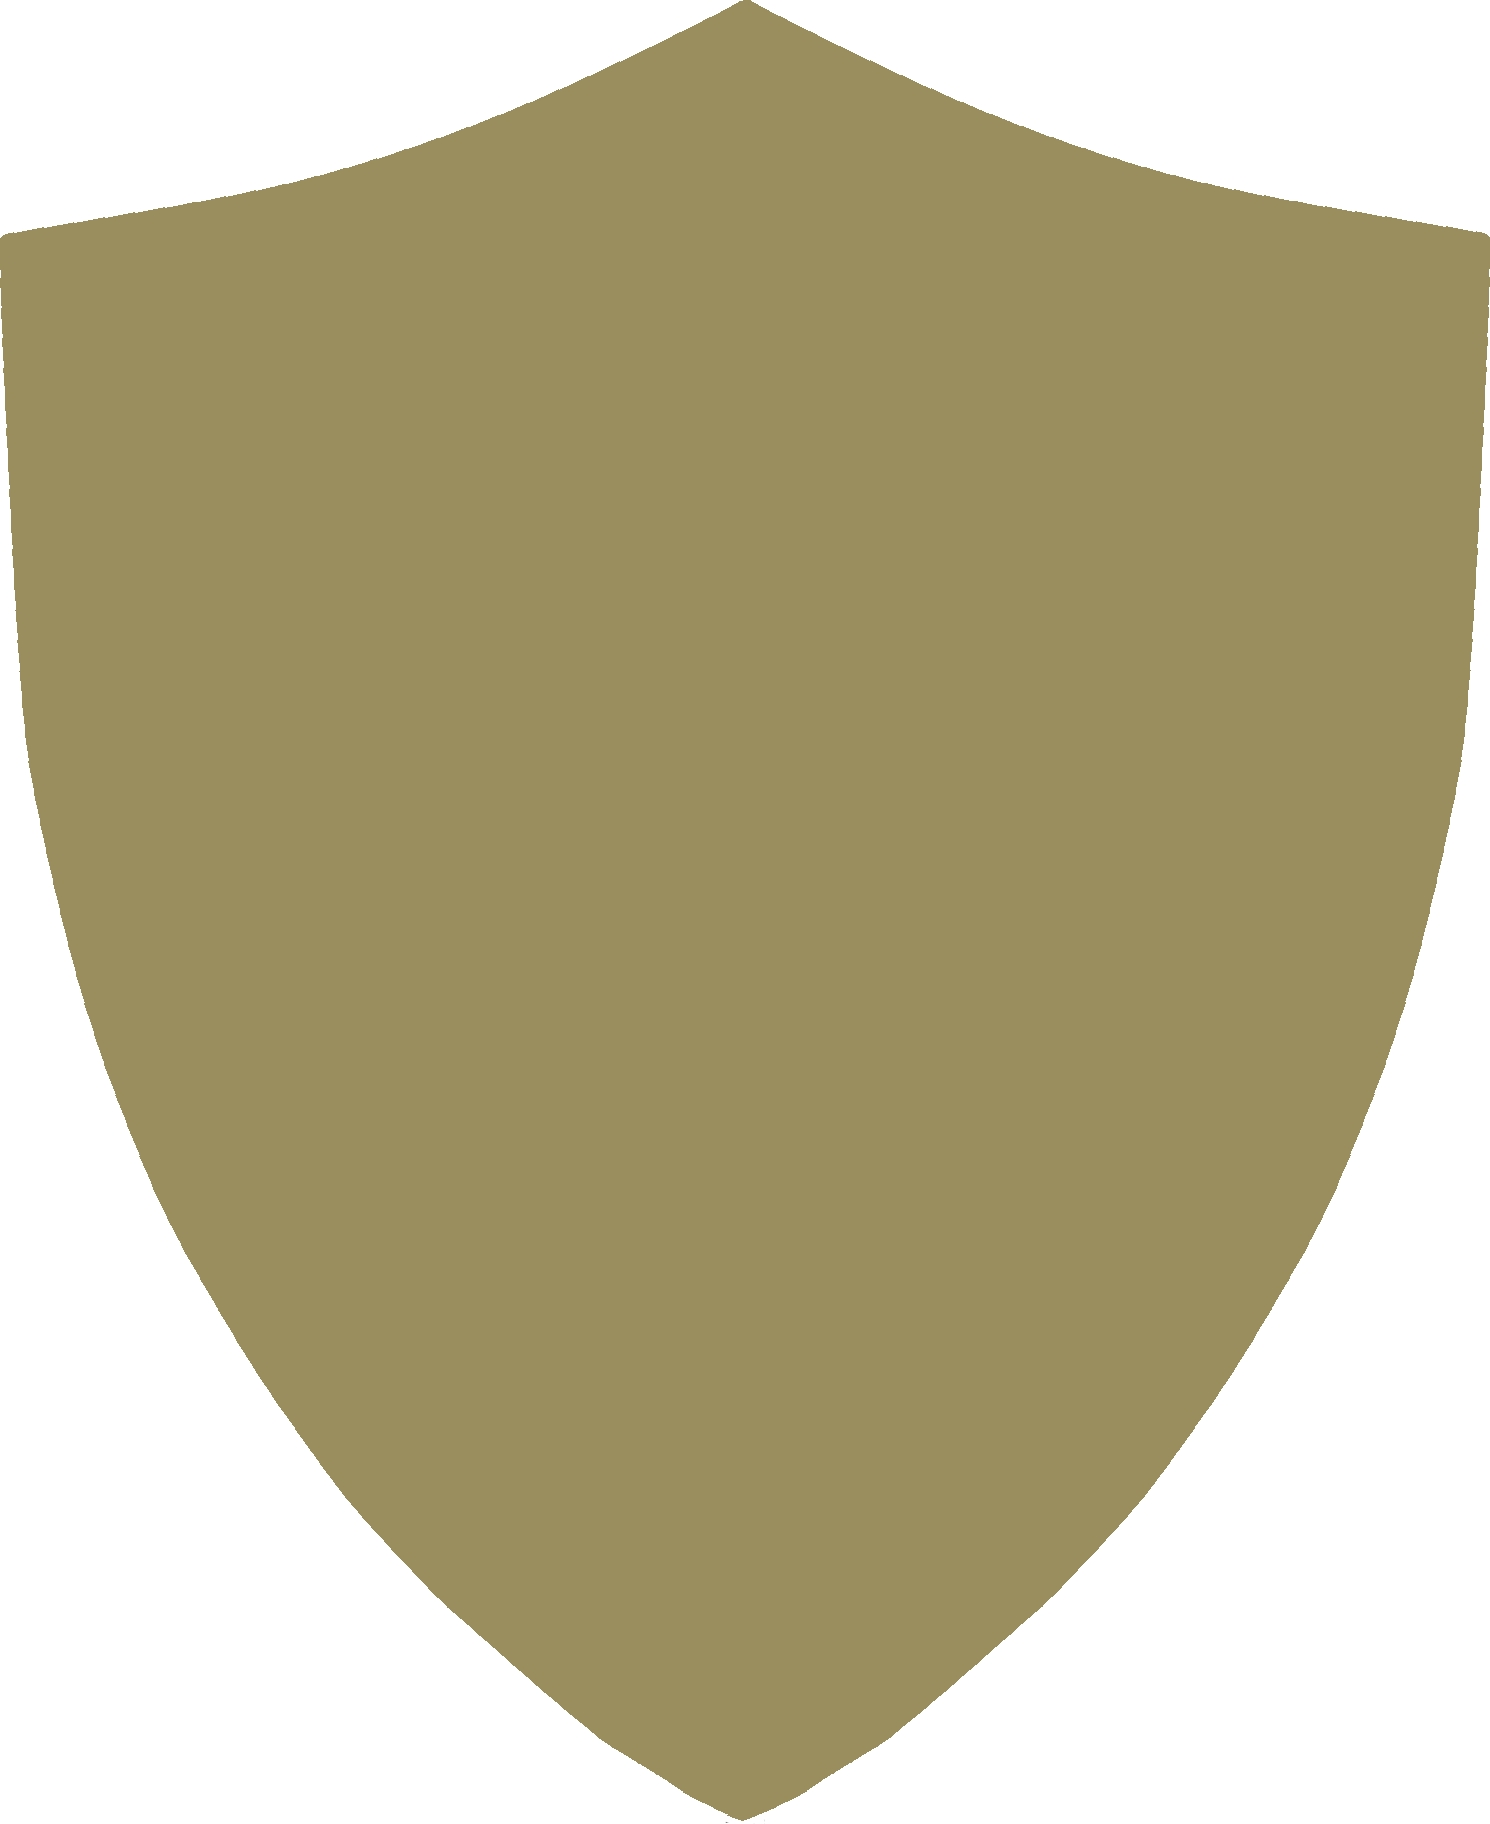 High Resolution Shield Png Clipart image #23080